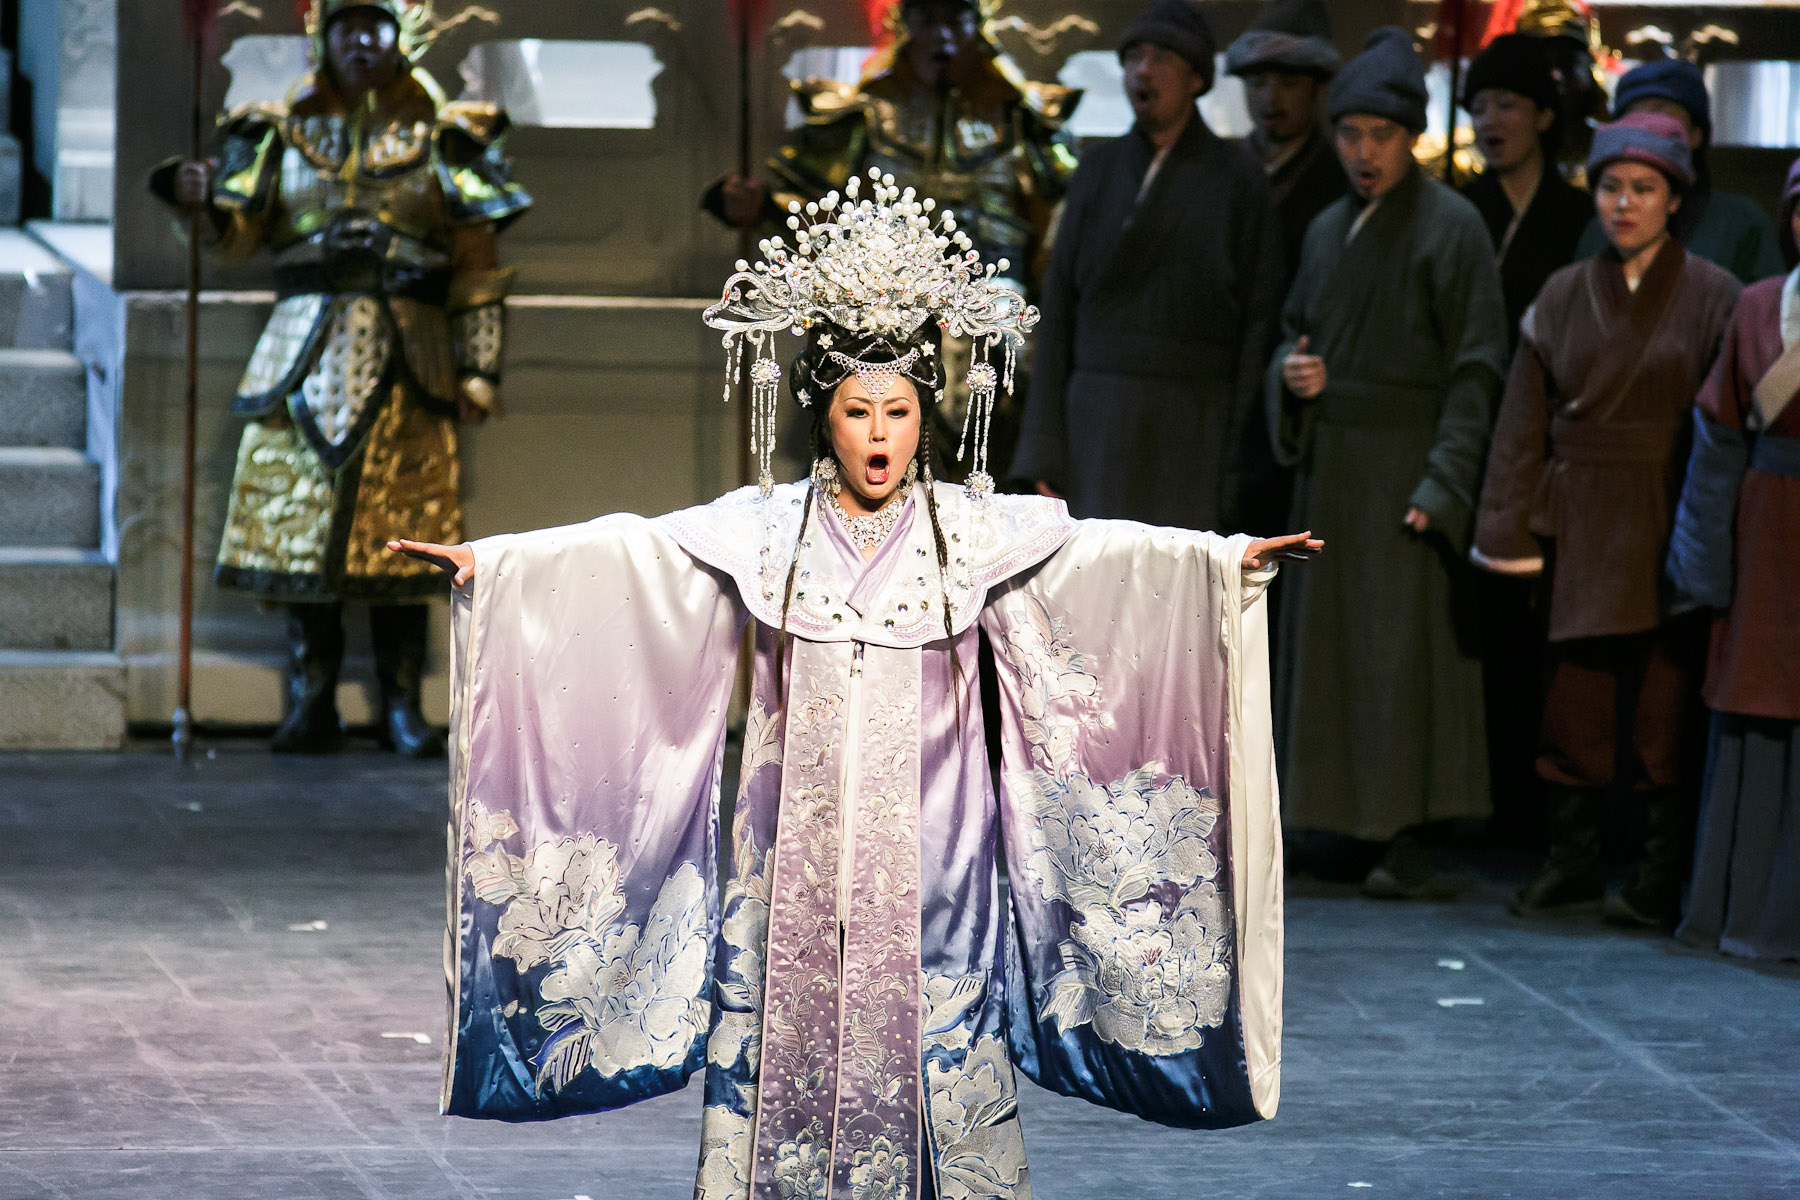 Wang Wei performs as Turandot in China National Opera House production of Giacomo Puccini\'s opera Turandot in Cankarjev dom Cultural & Congress center in Ljubljana, Slovenia, Sep. 1, 2015.